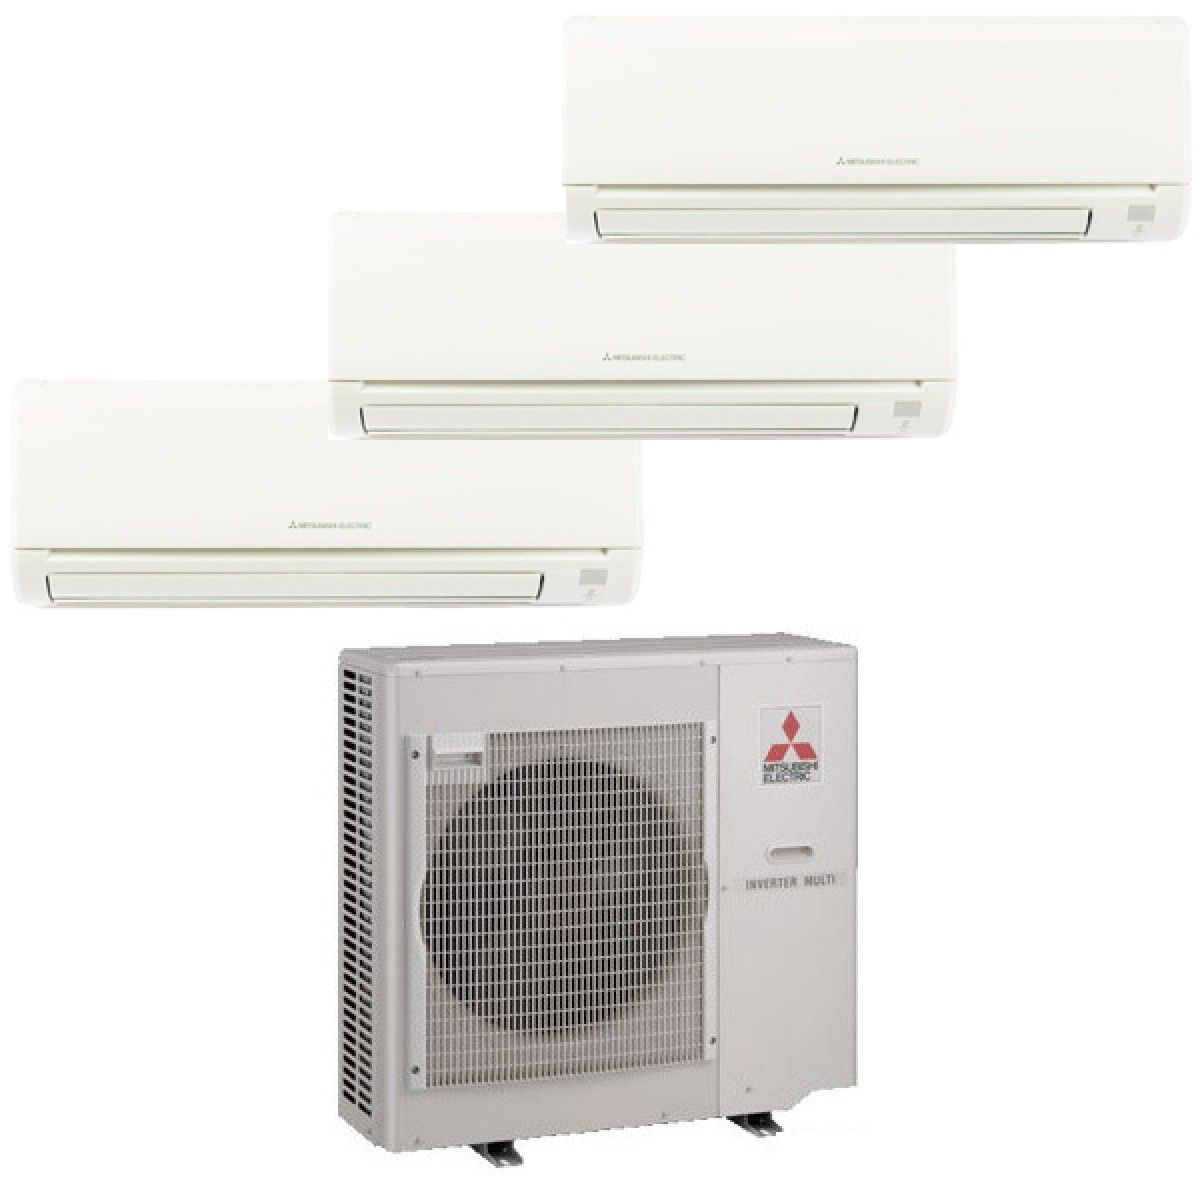 Mitsubishi Mr Slim 3 Zone Heat Pump With 2 9k Btu Indoor: ductless ac